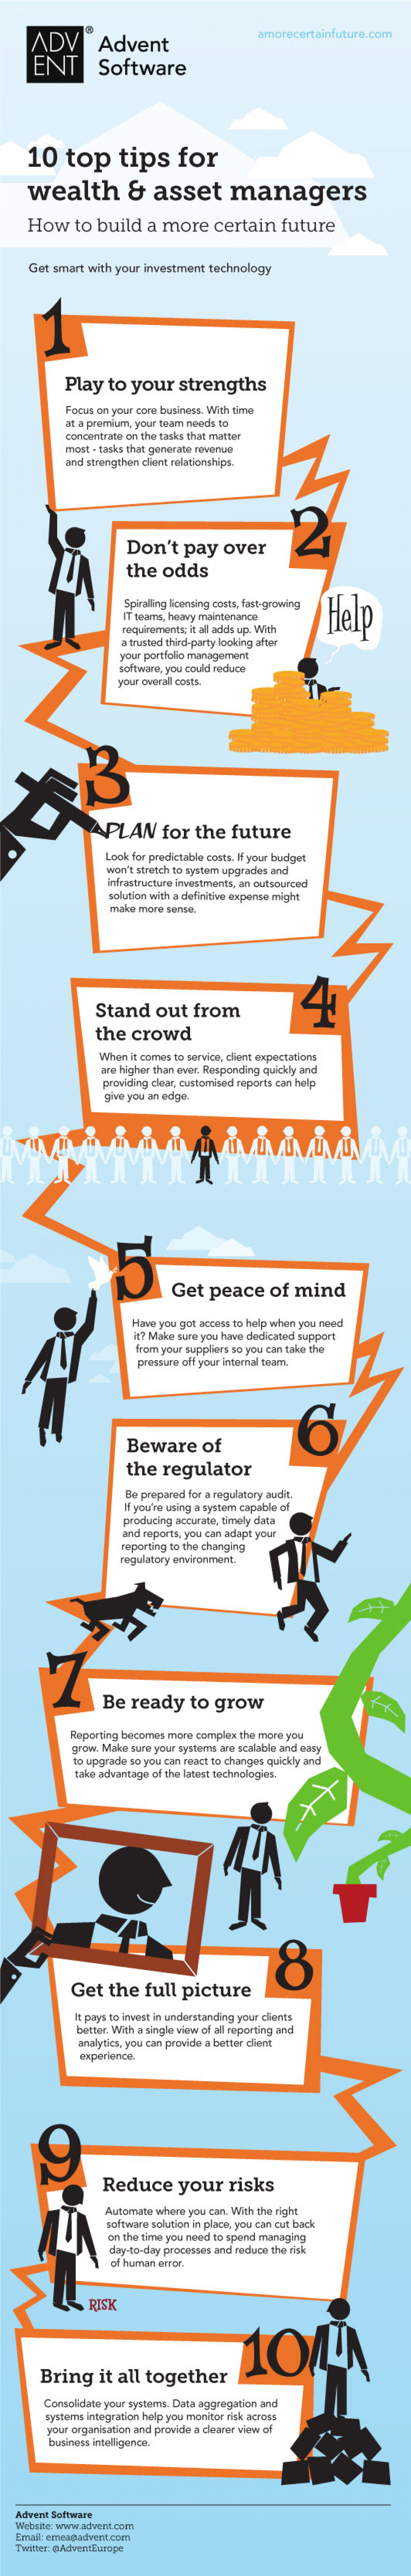 Ten Top Tips for Wealth and Asset Managers Infographic